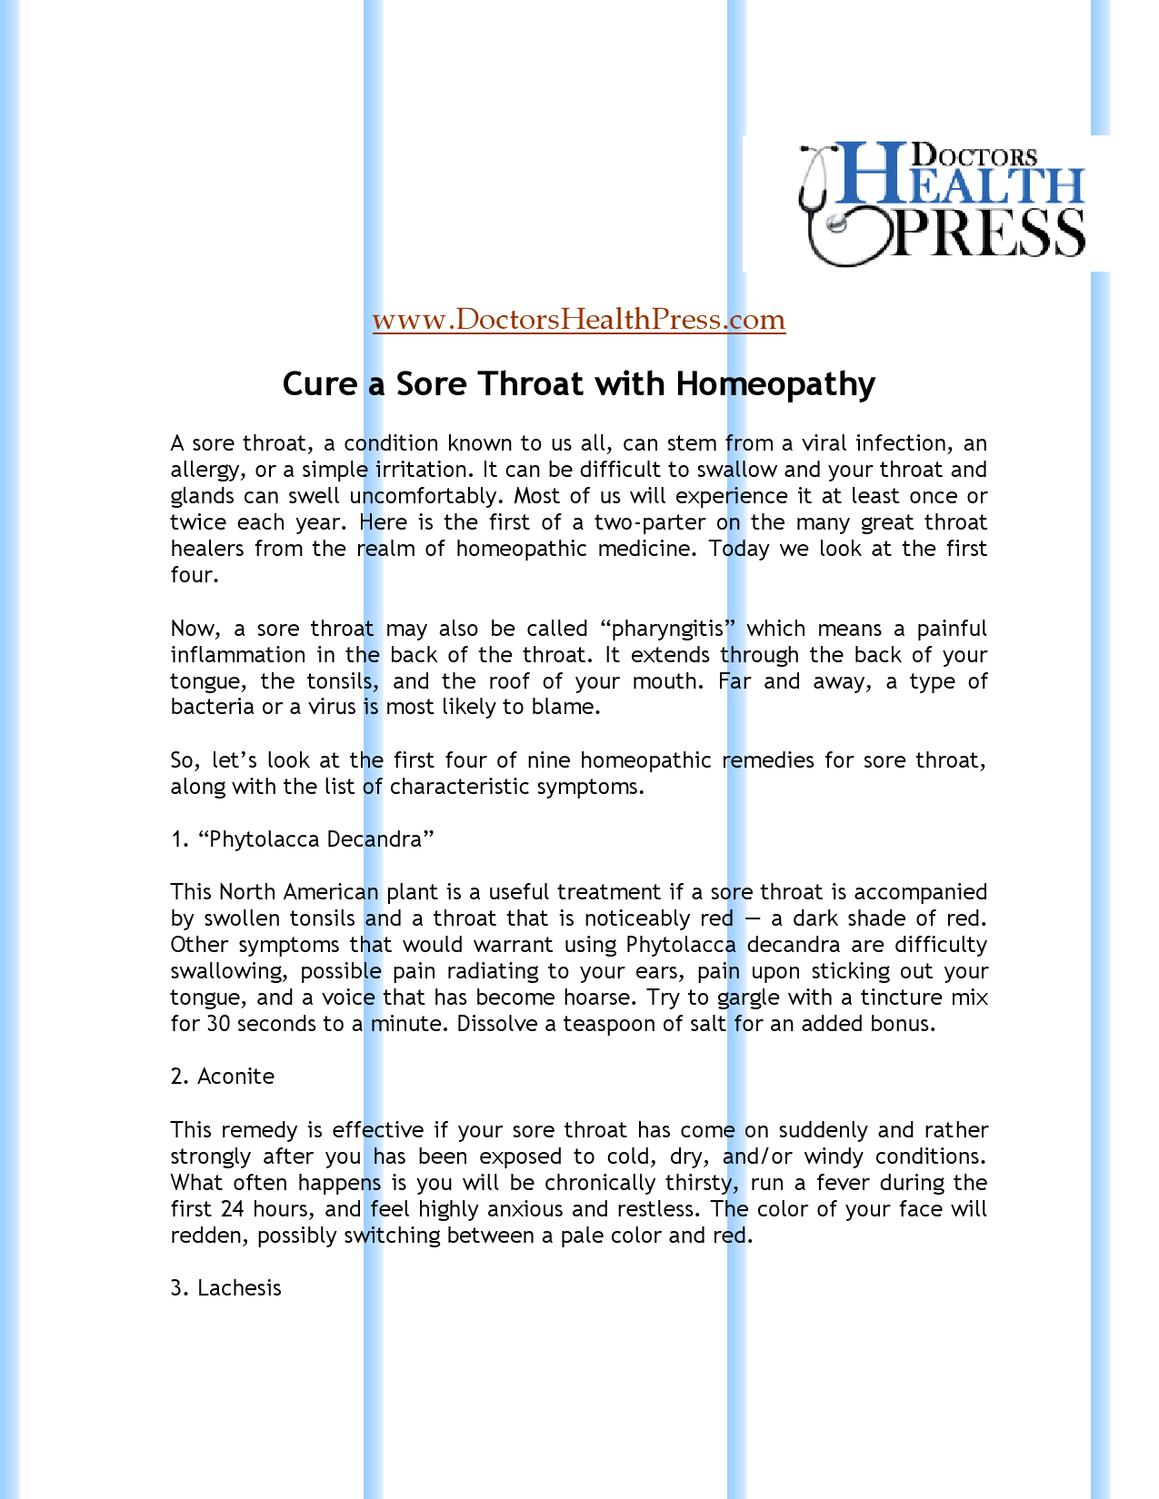 Cure a Sore Throat with Homeopathy by Doctors Health - issuu